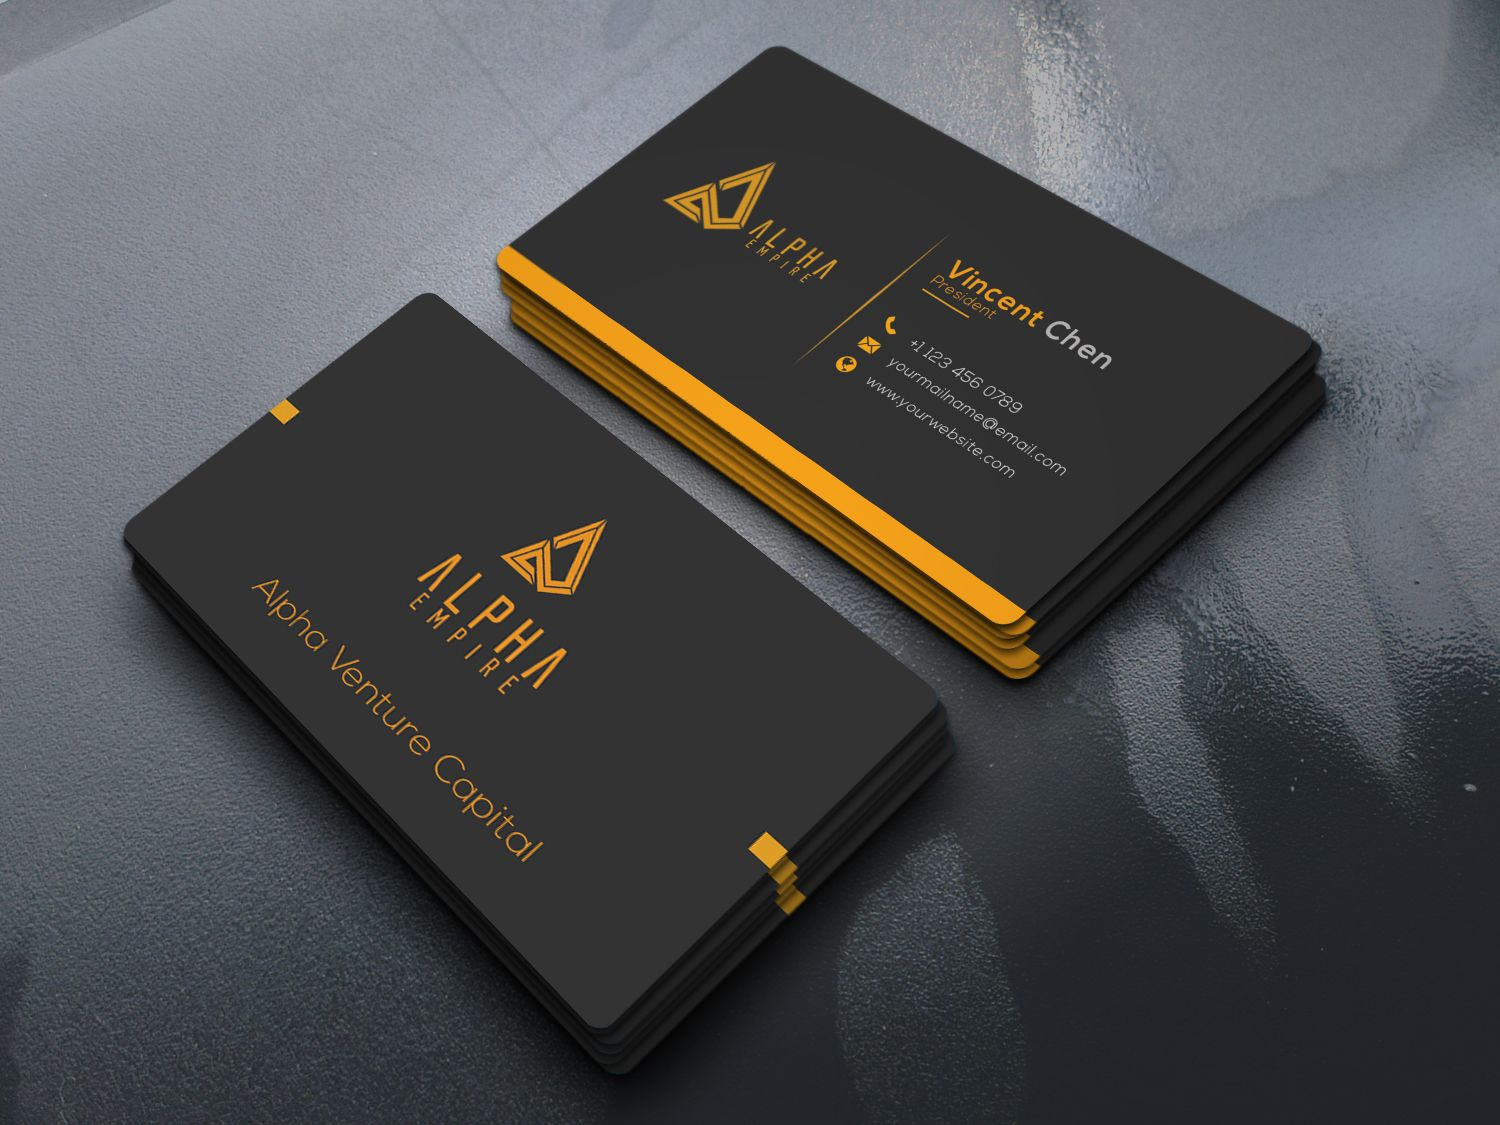 """Check out my @Behance project: """"Corporate Business Card"""" www.behance.net/..."""